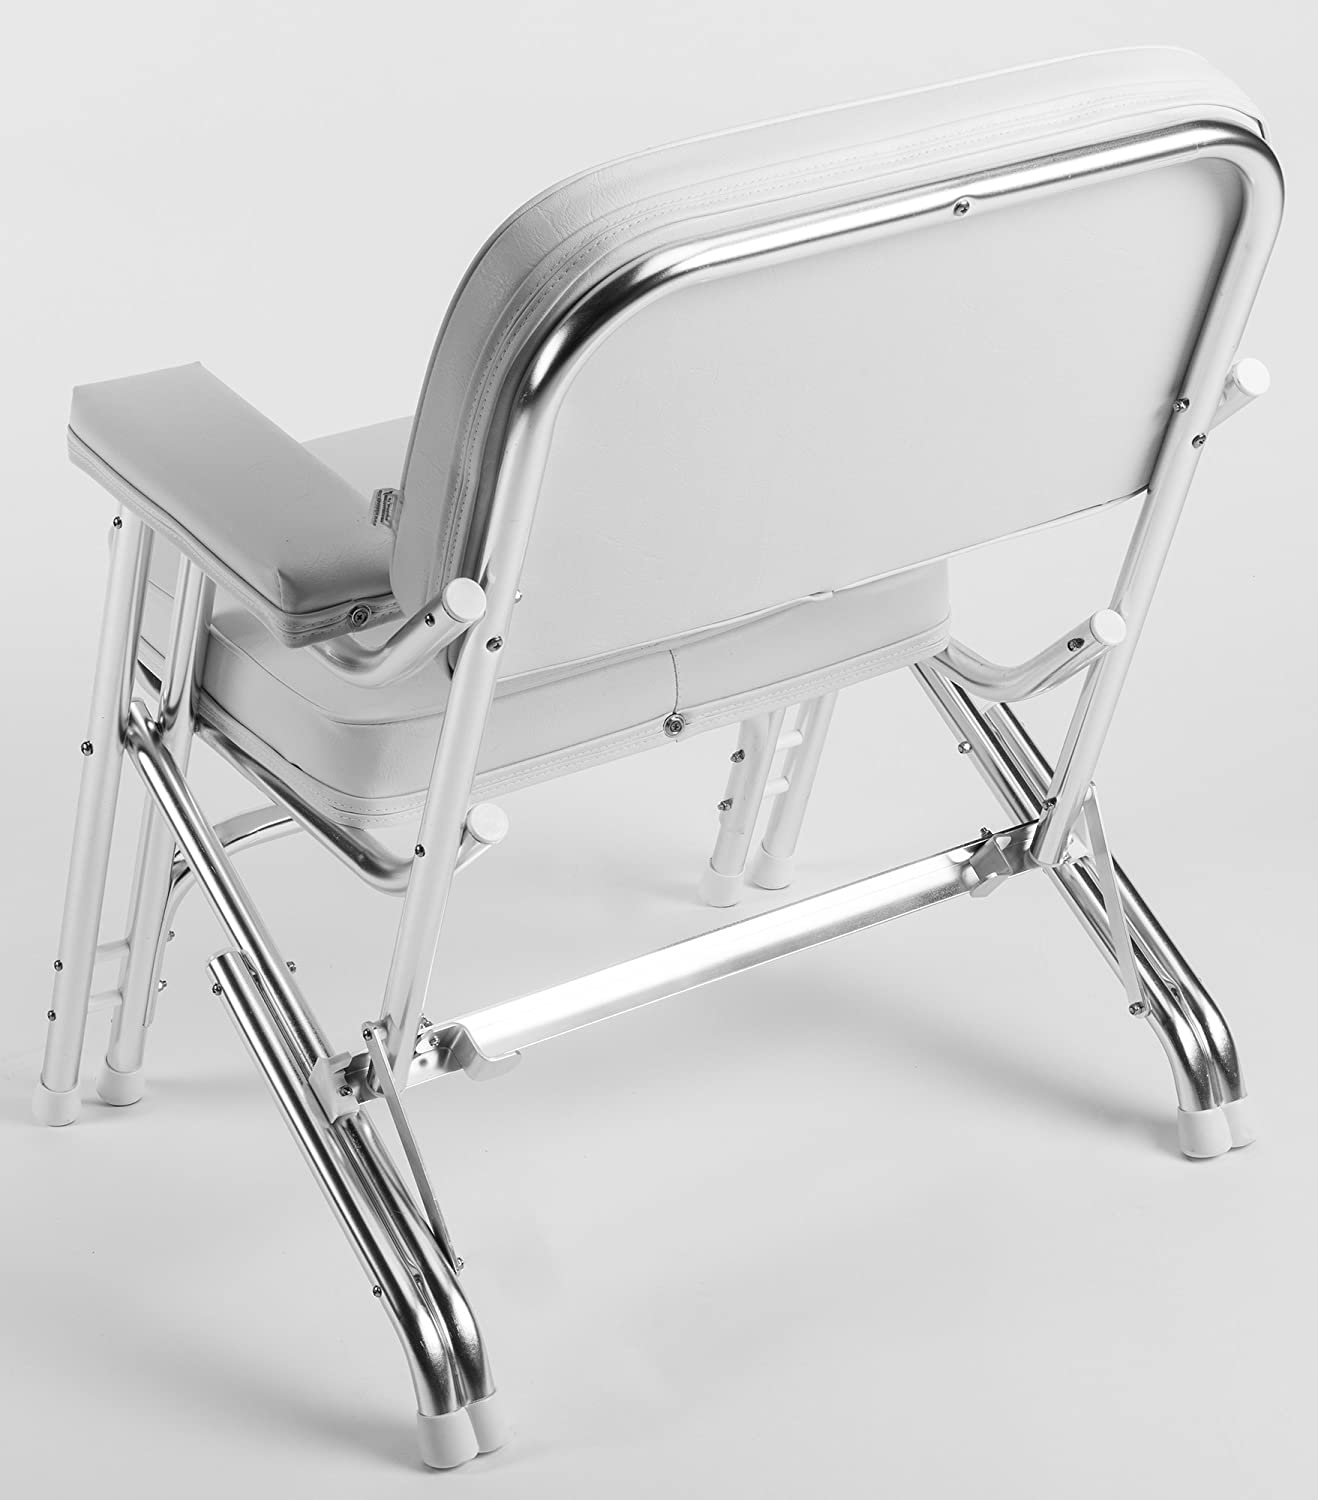 Heavy Duty Patio Chairs For Heavy People For Big